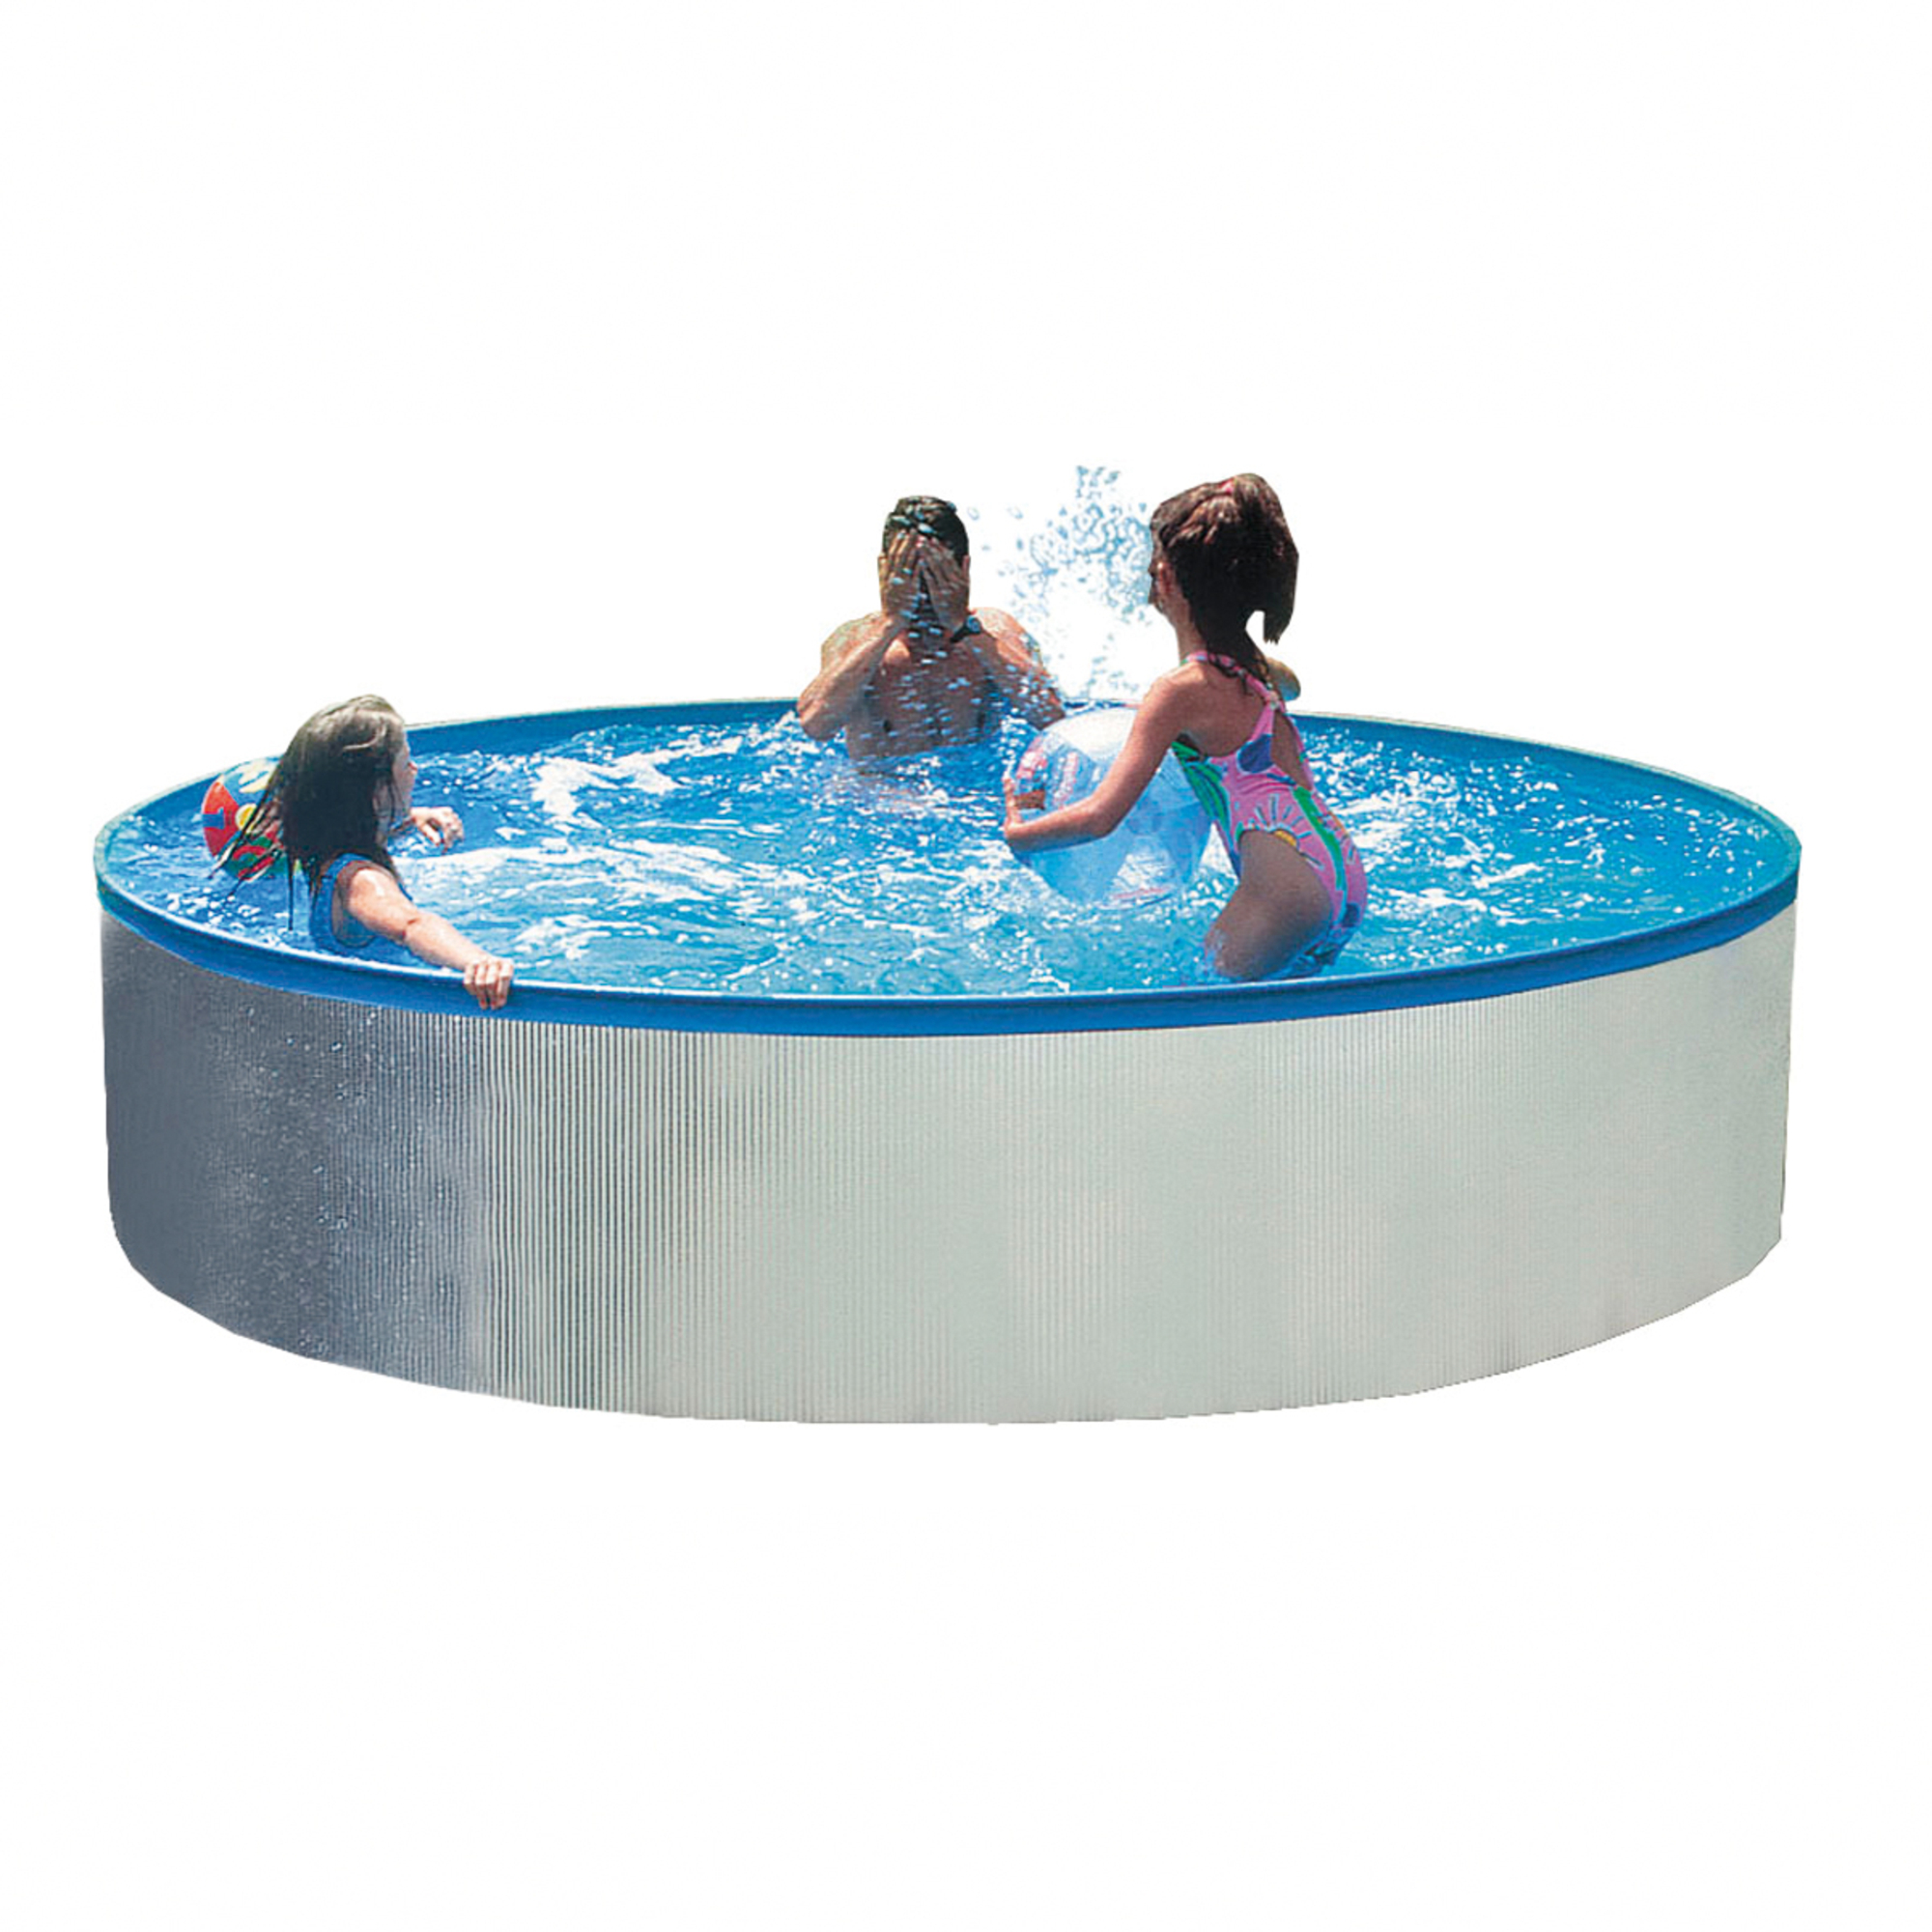 Piscine gonflable solde maison design for Piscine acier solde